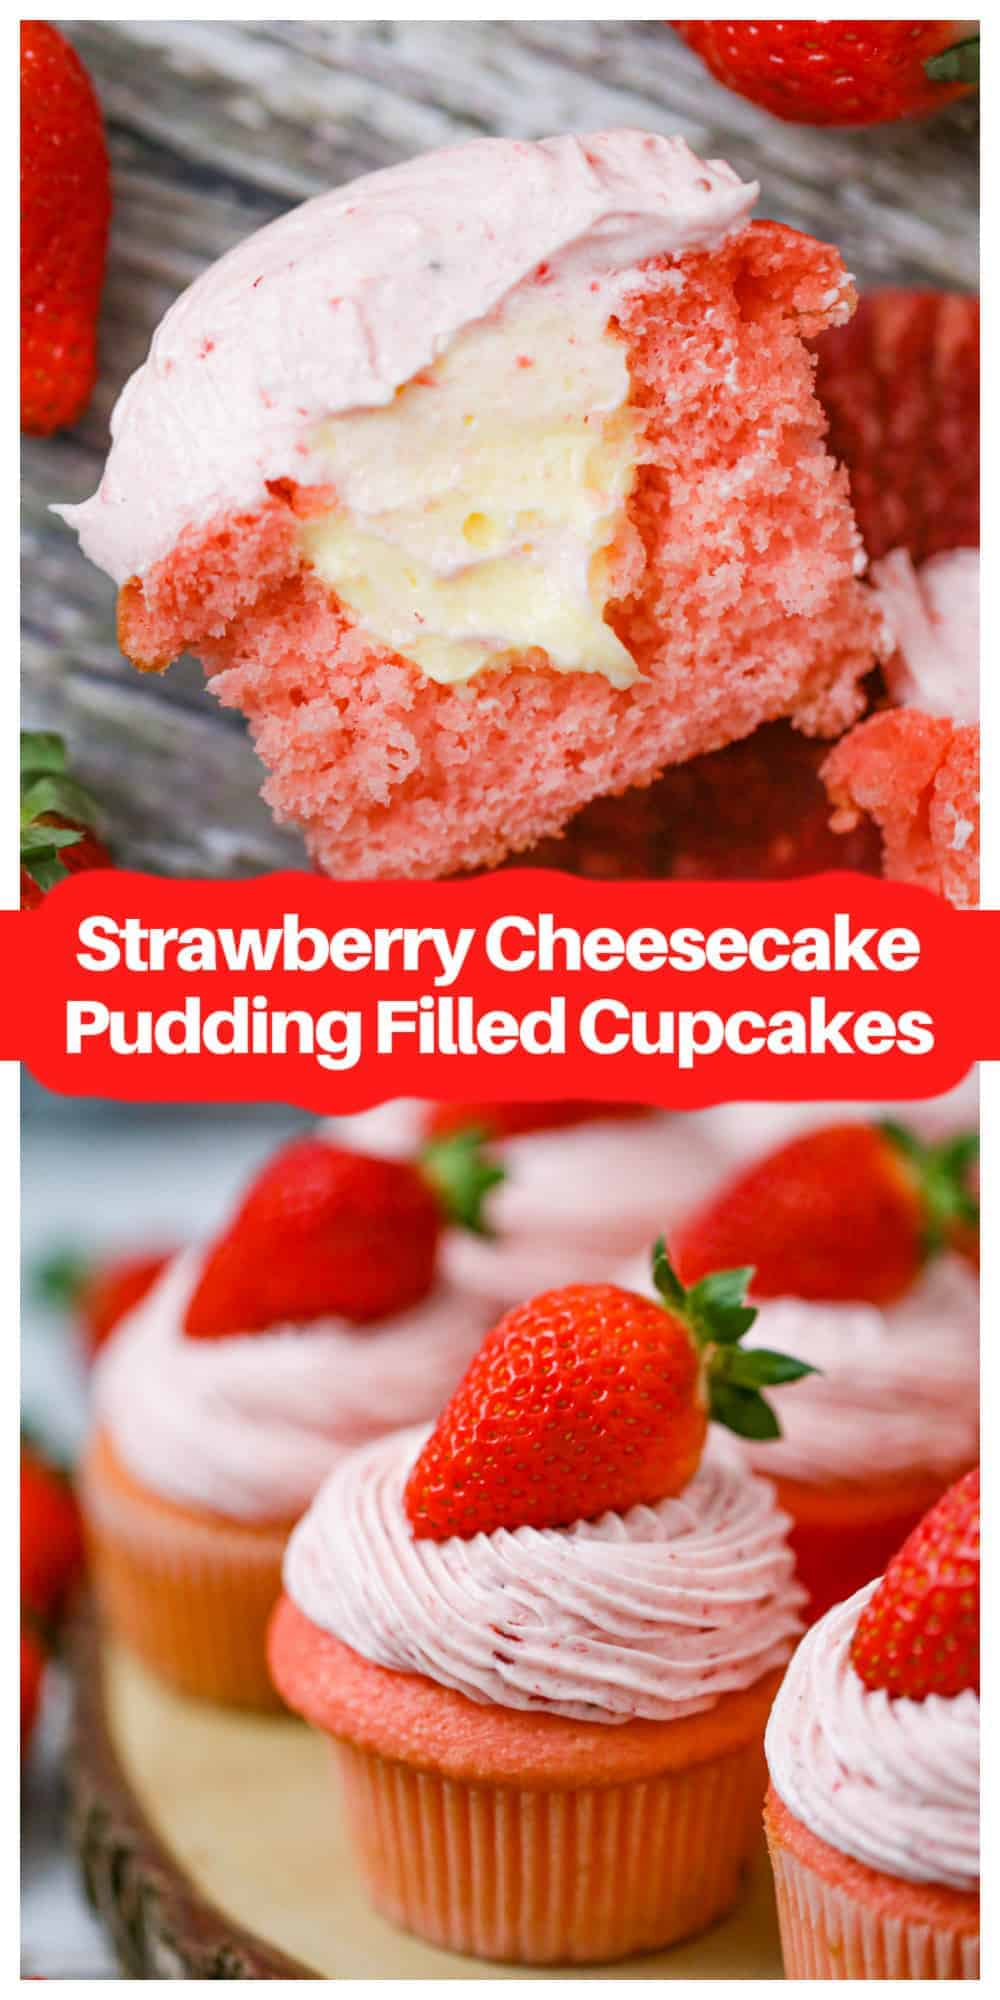 Ultimate Strawberry Cheesecake Pudding Filled Cupcakes